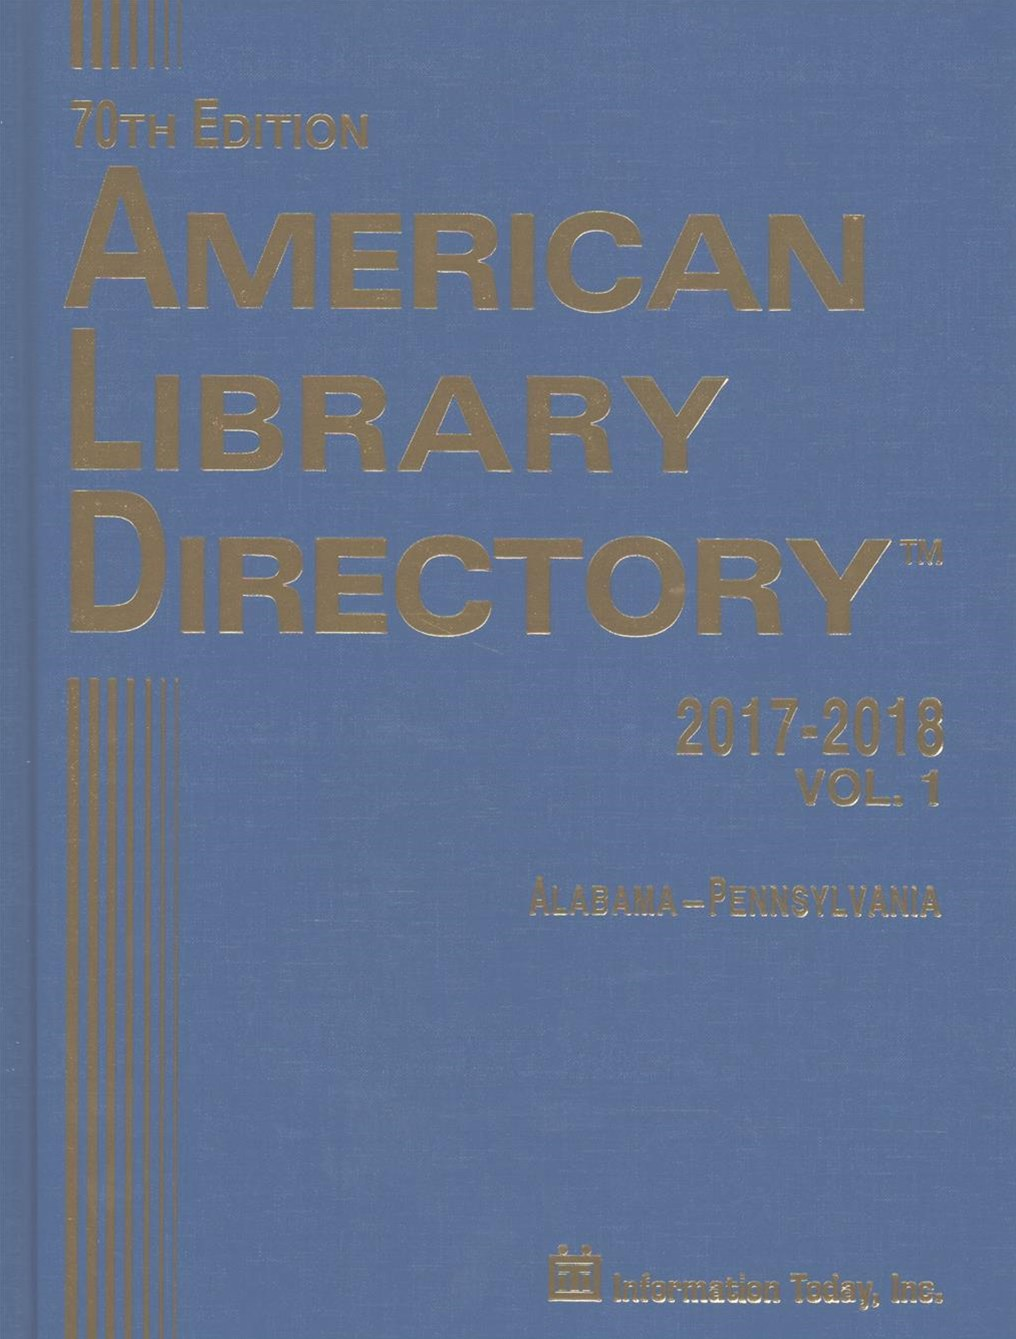 American Library Directory 2017-2018